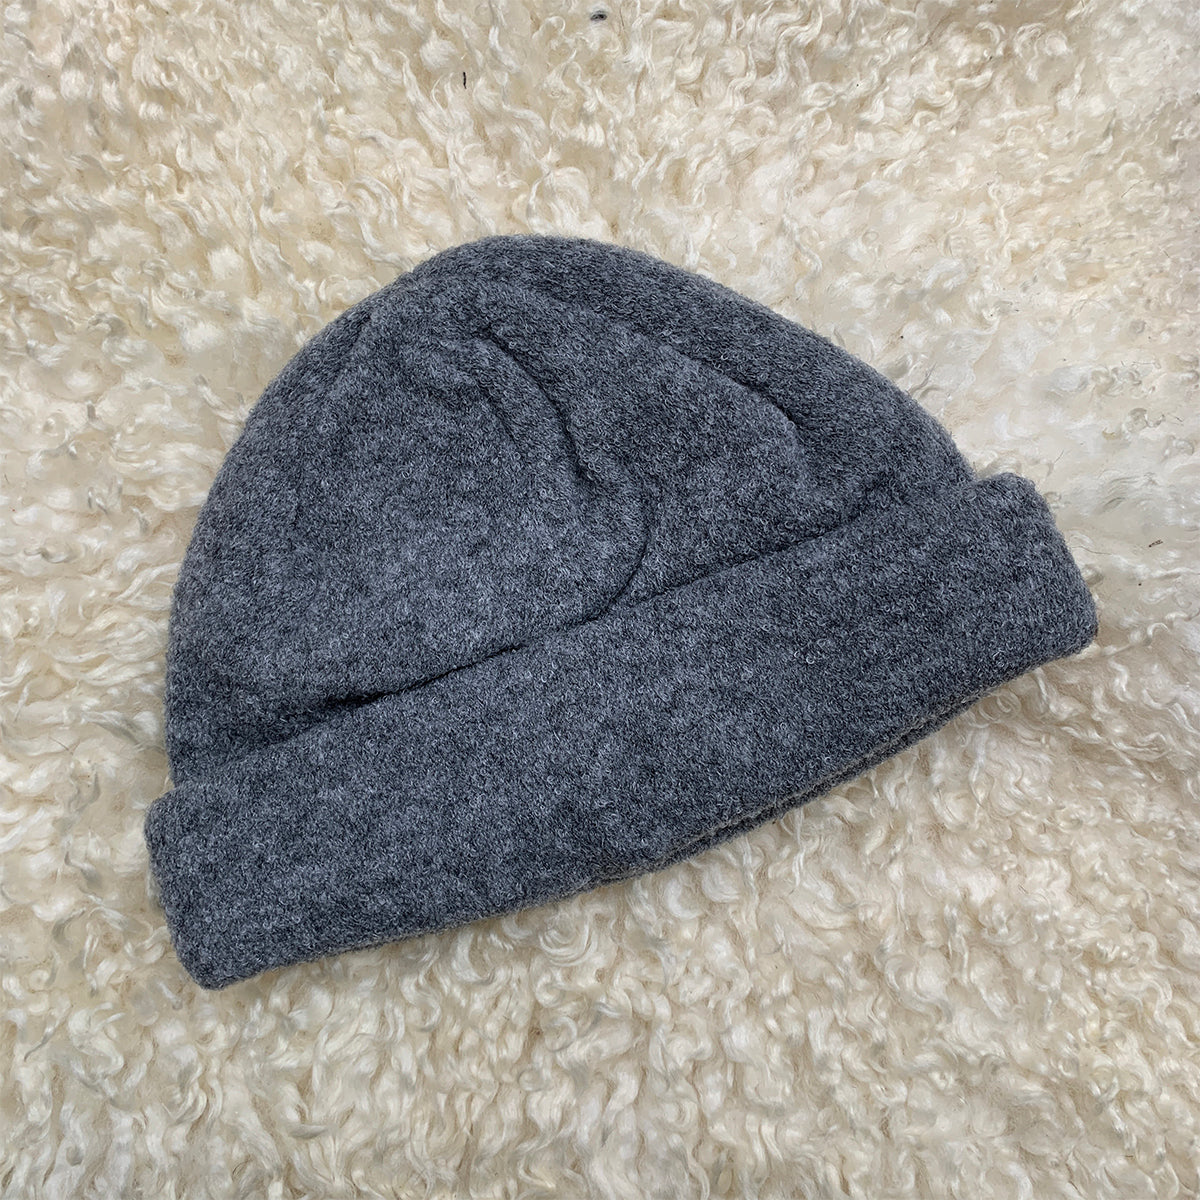 grey knitted beanie hat